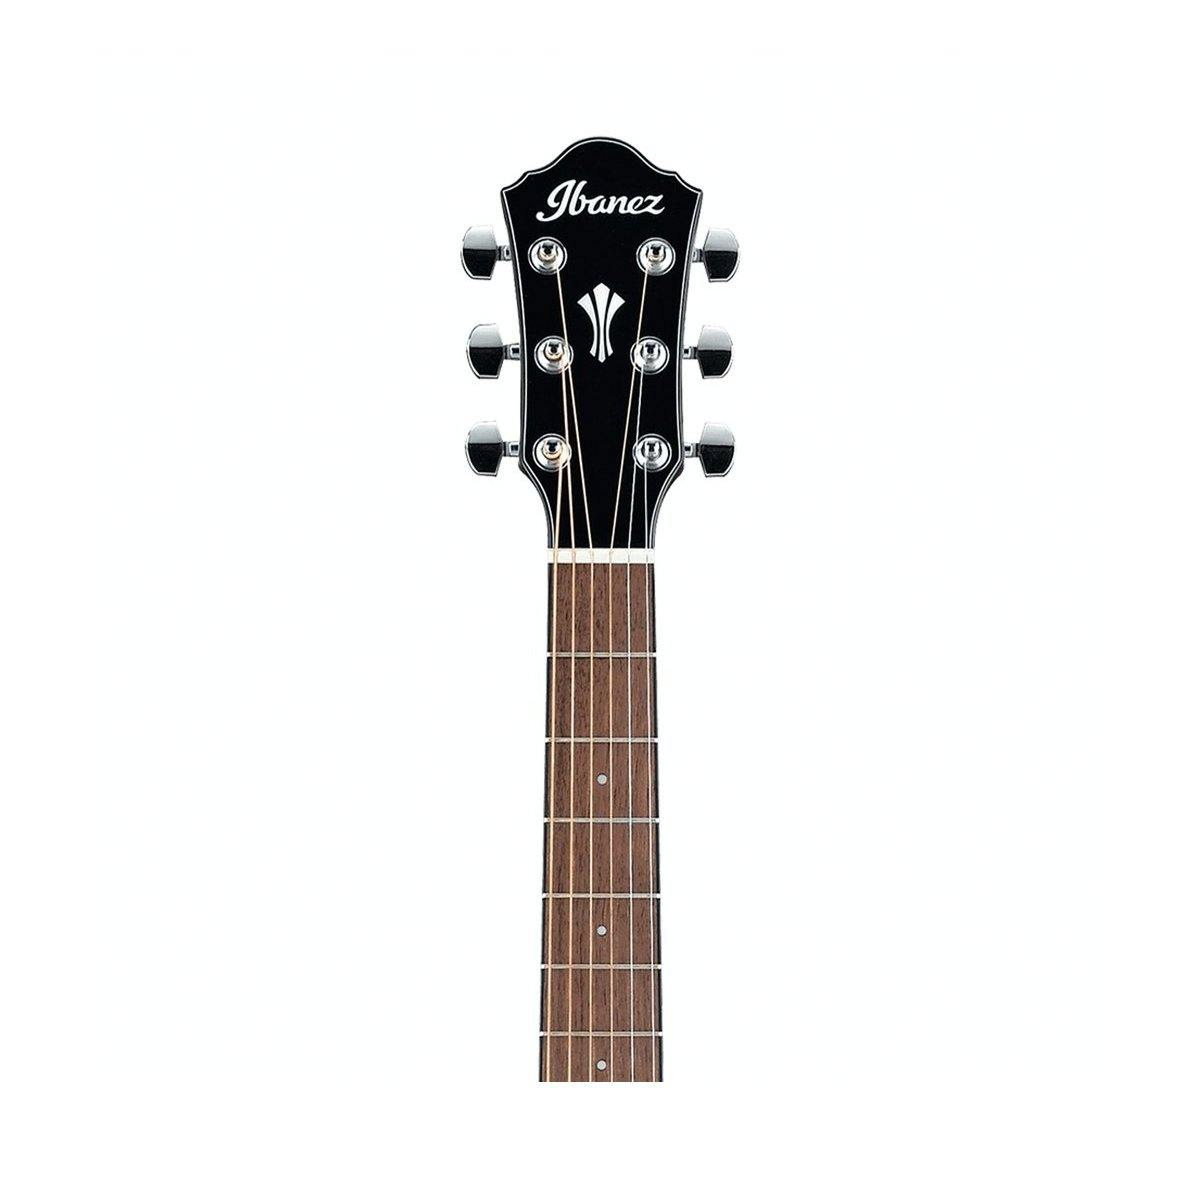 Ibanez AEG50 Spruce Top Acoustic Guitar w/ EQ - ICONS Shop